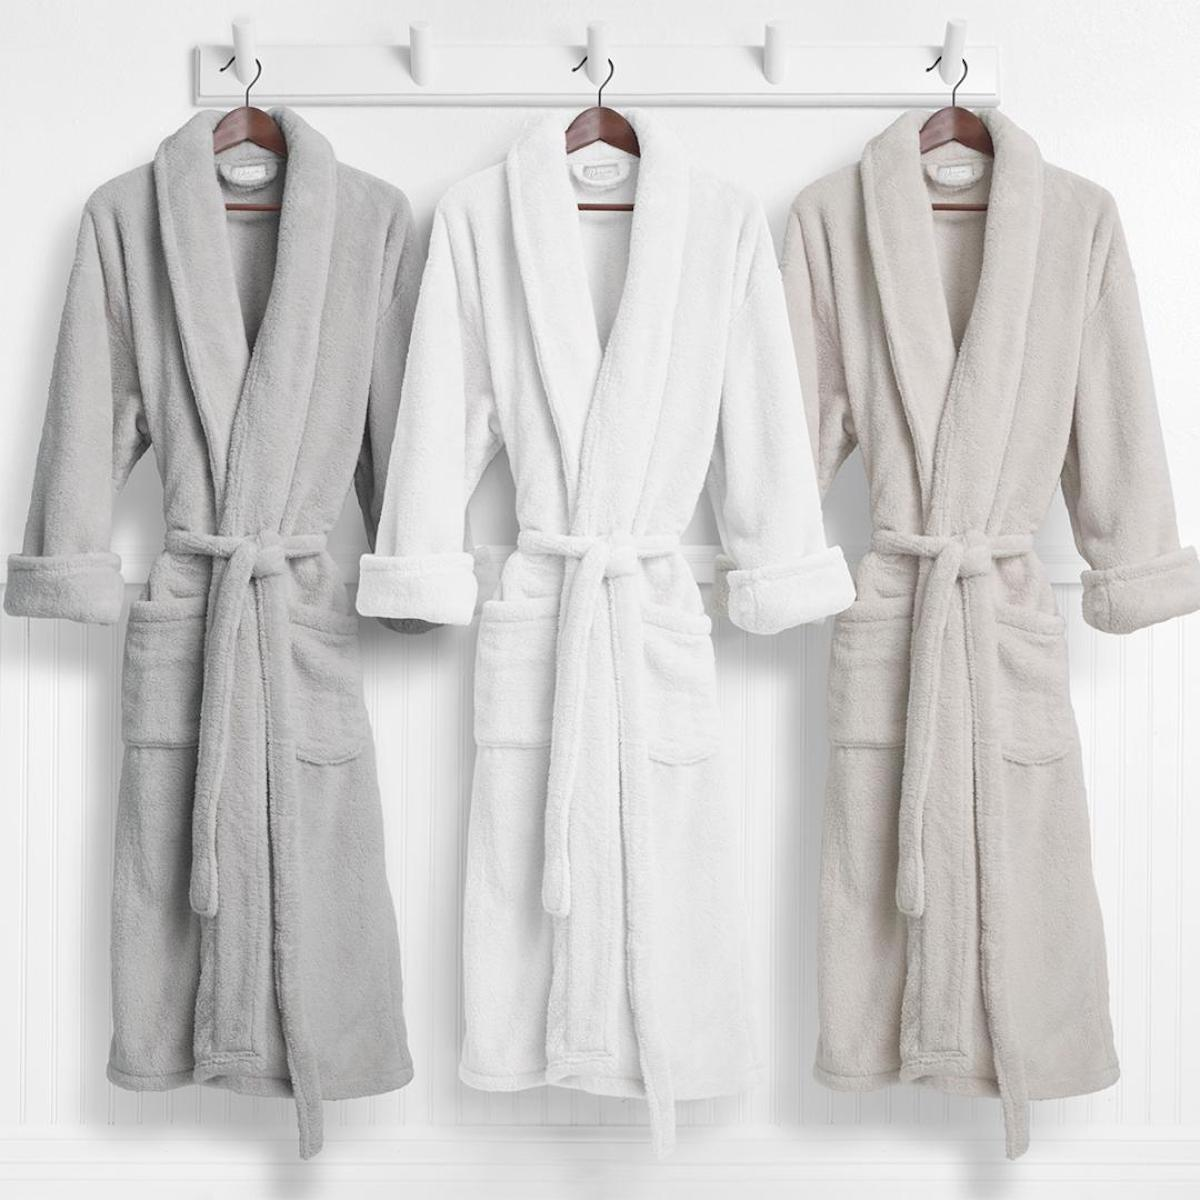 PLUSH ROBES FOR LOUNGING Header Image